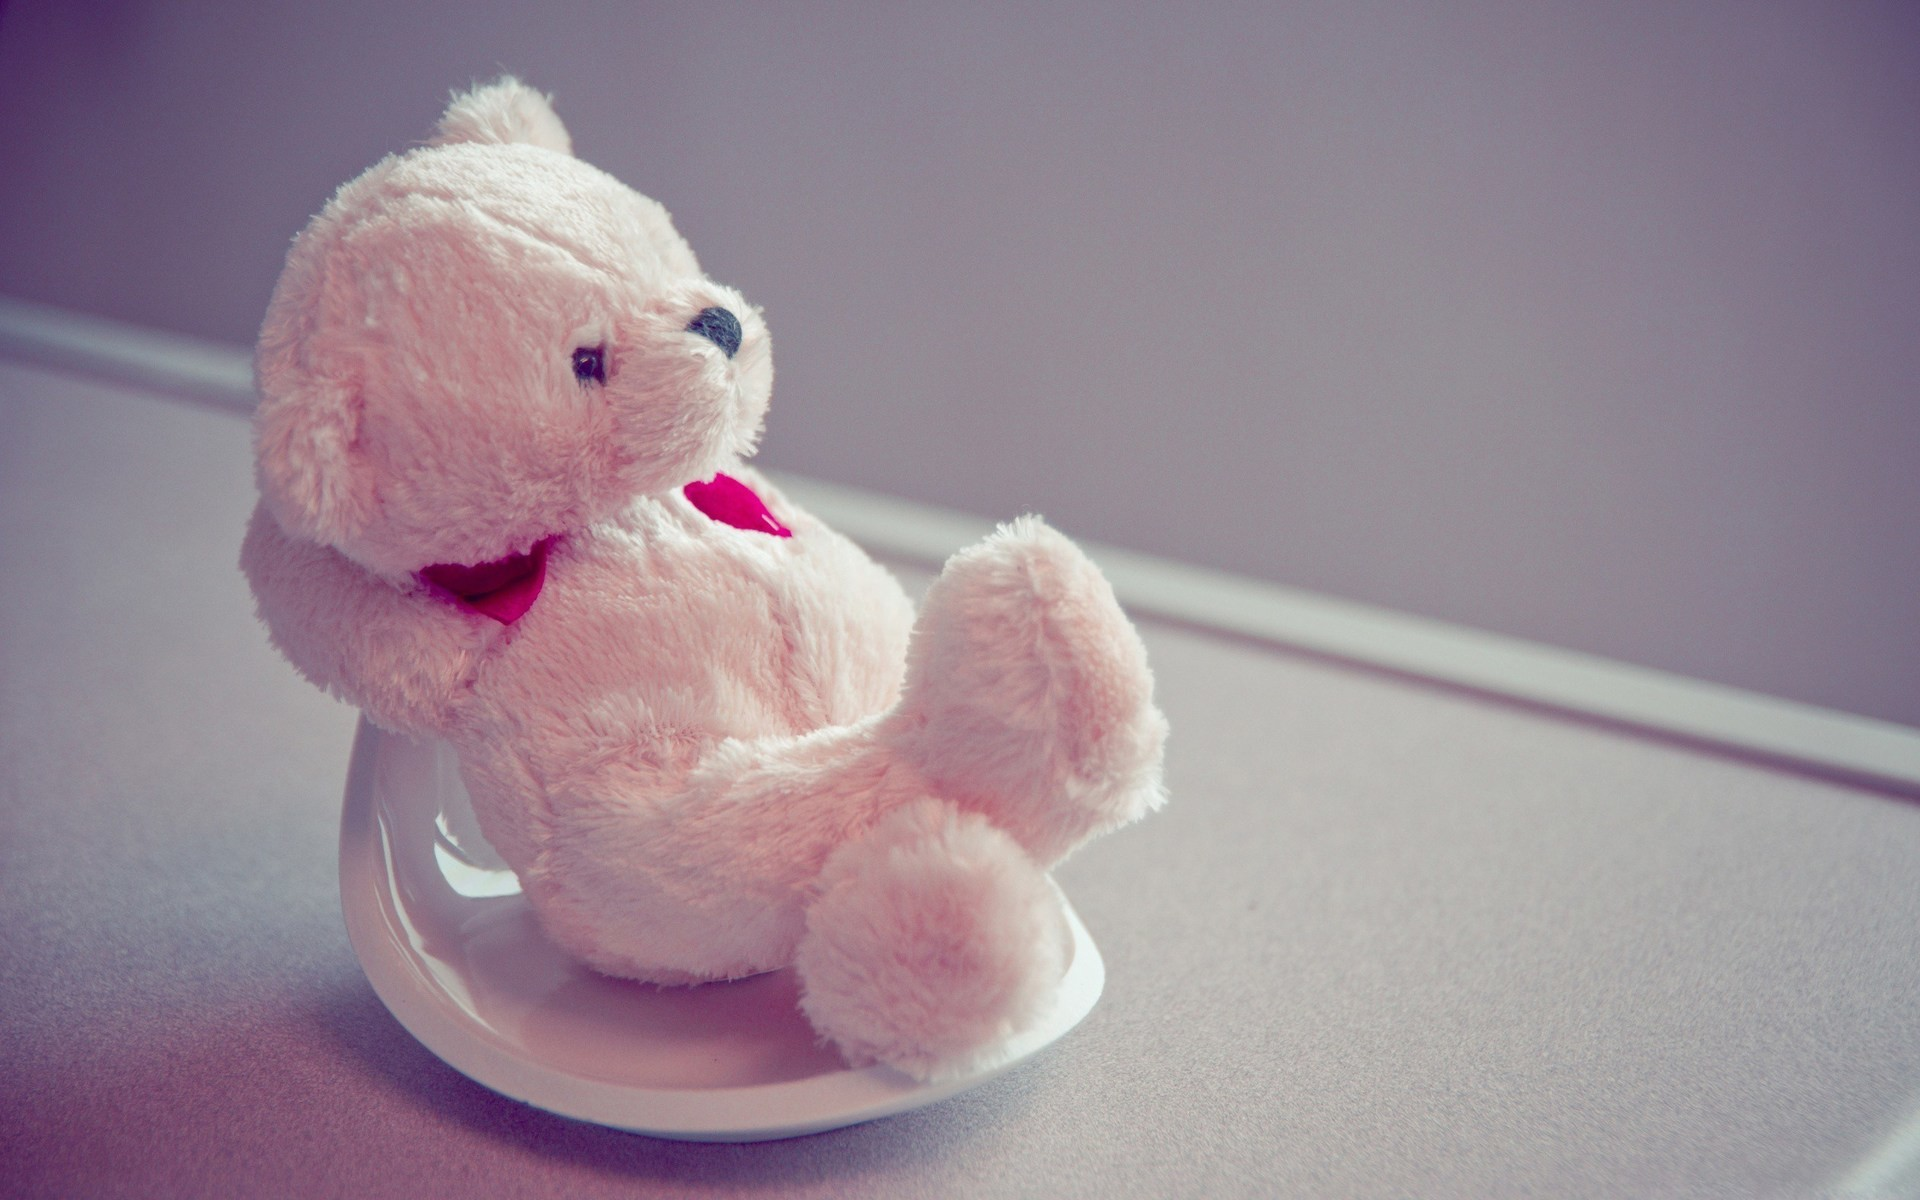 1920x1200 Beautiful Cute Teddy Bear HD Wallpapers